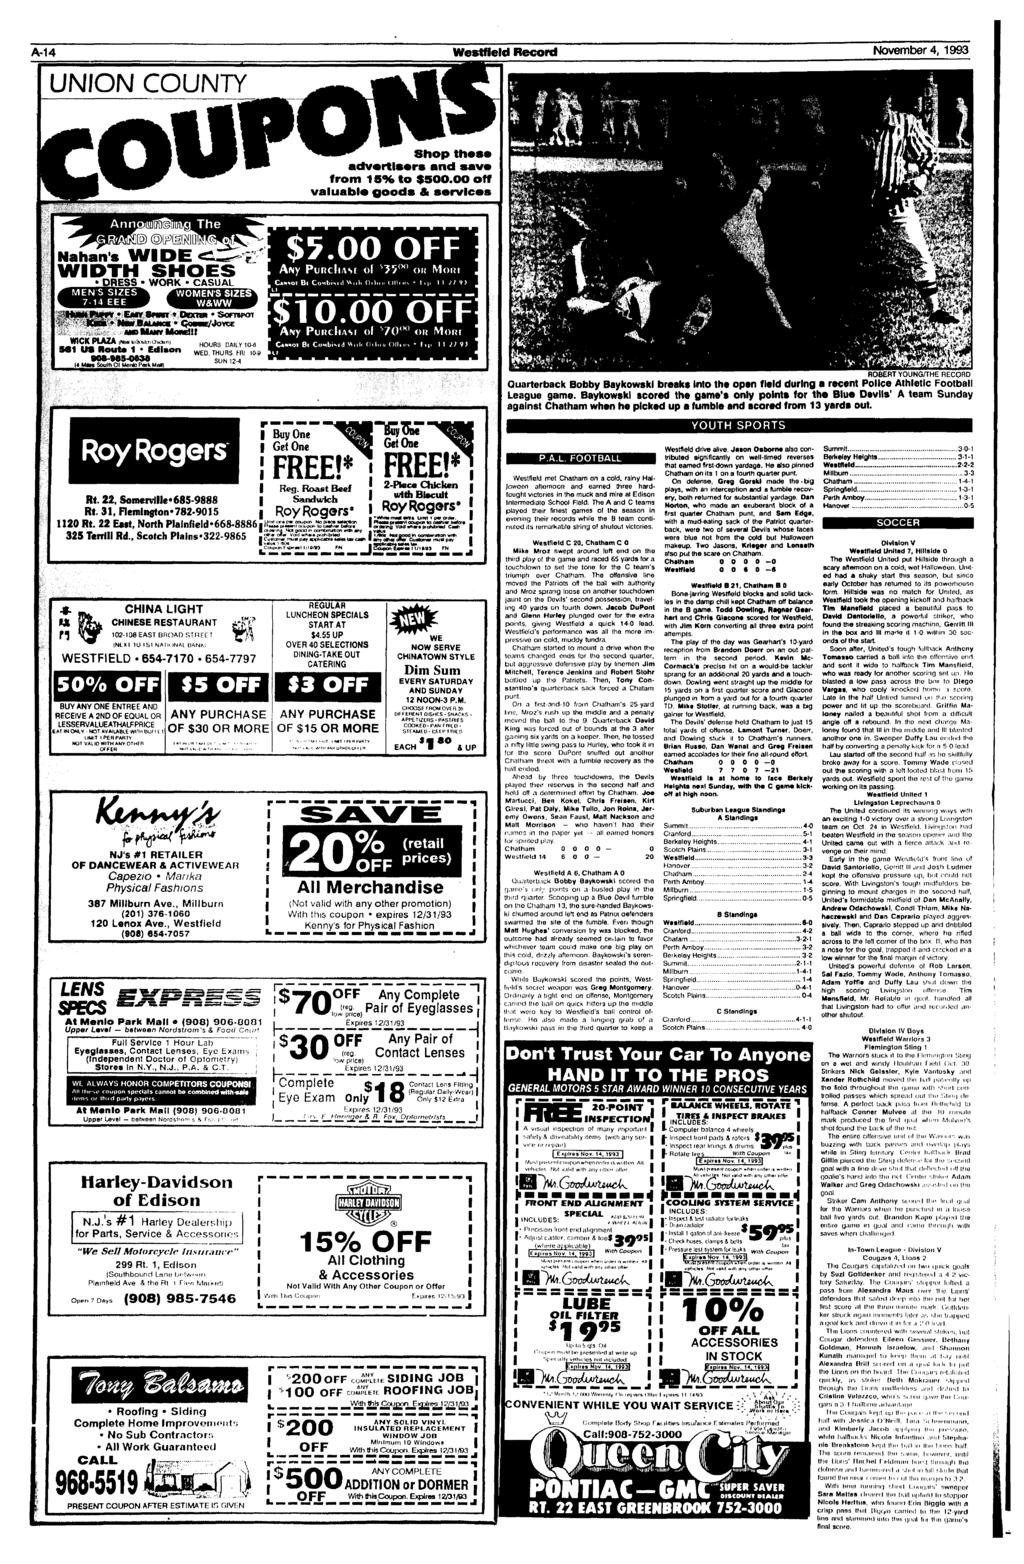 A-14 Westfleld Record November 4, 1993 UNION COUNTY Shop thest) advertisers and save from 15% to $500.00 off valuable goods & services Nahan's WIDE WIDTH SHOES $5.